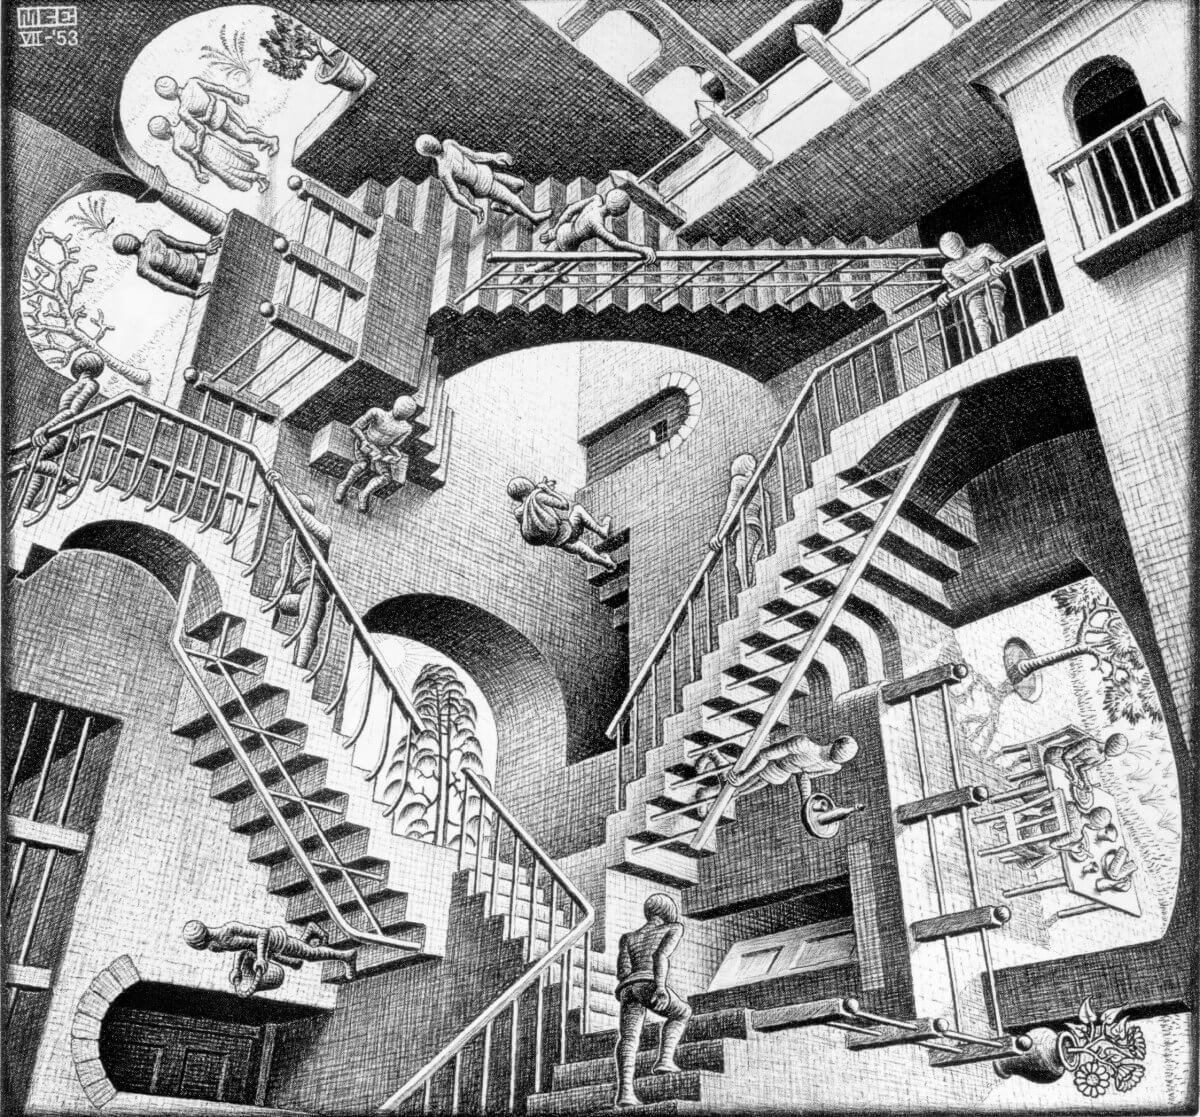 MC ESCHER IMAGENES IMPOSIBLES